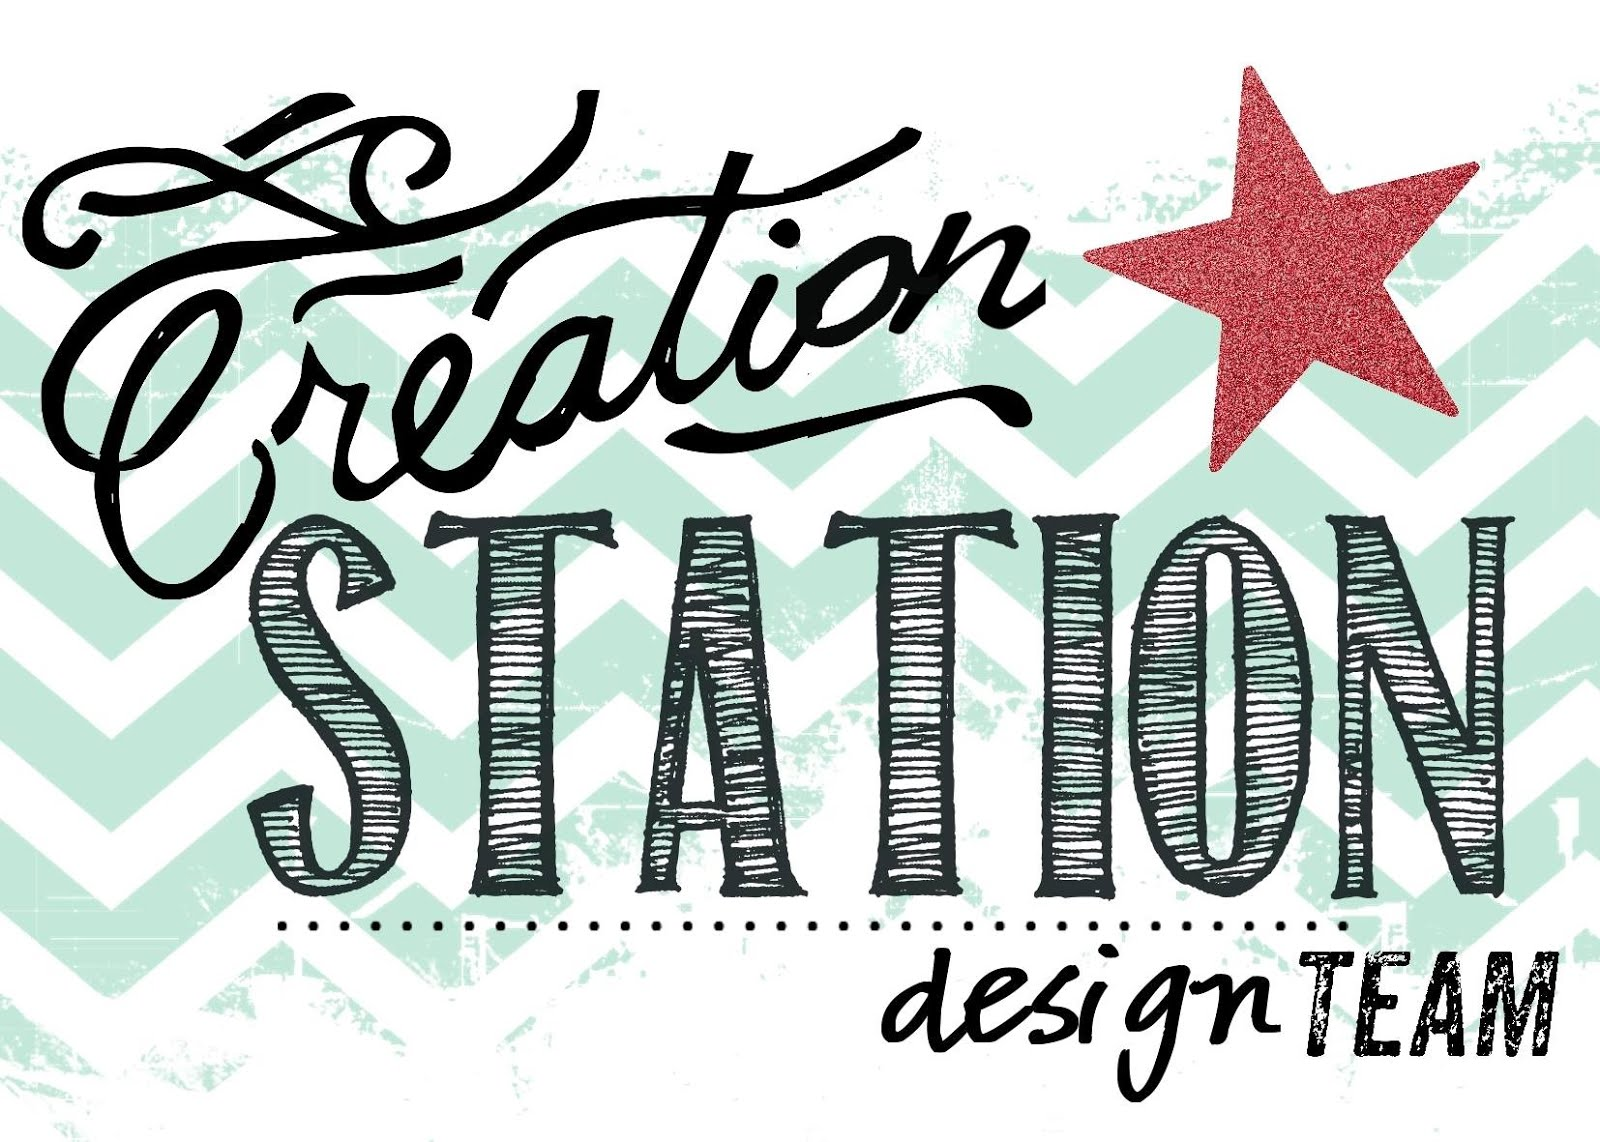 Creation Station Design Team